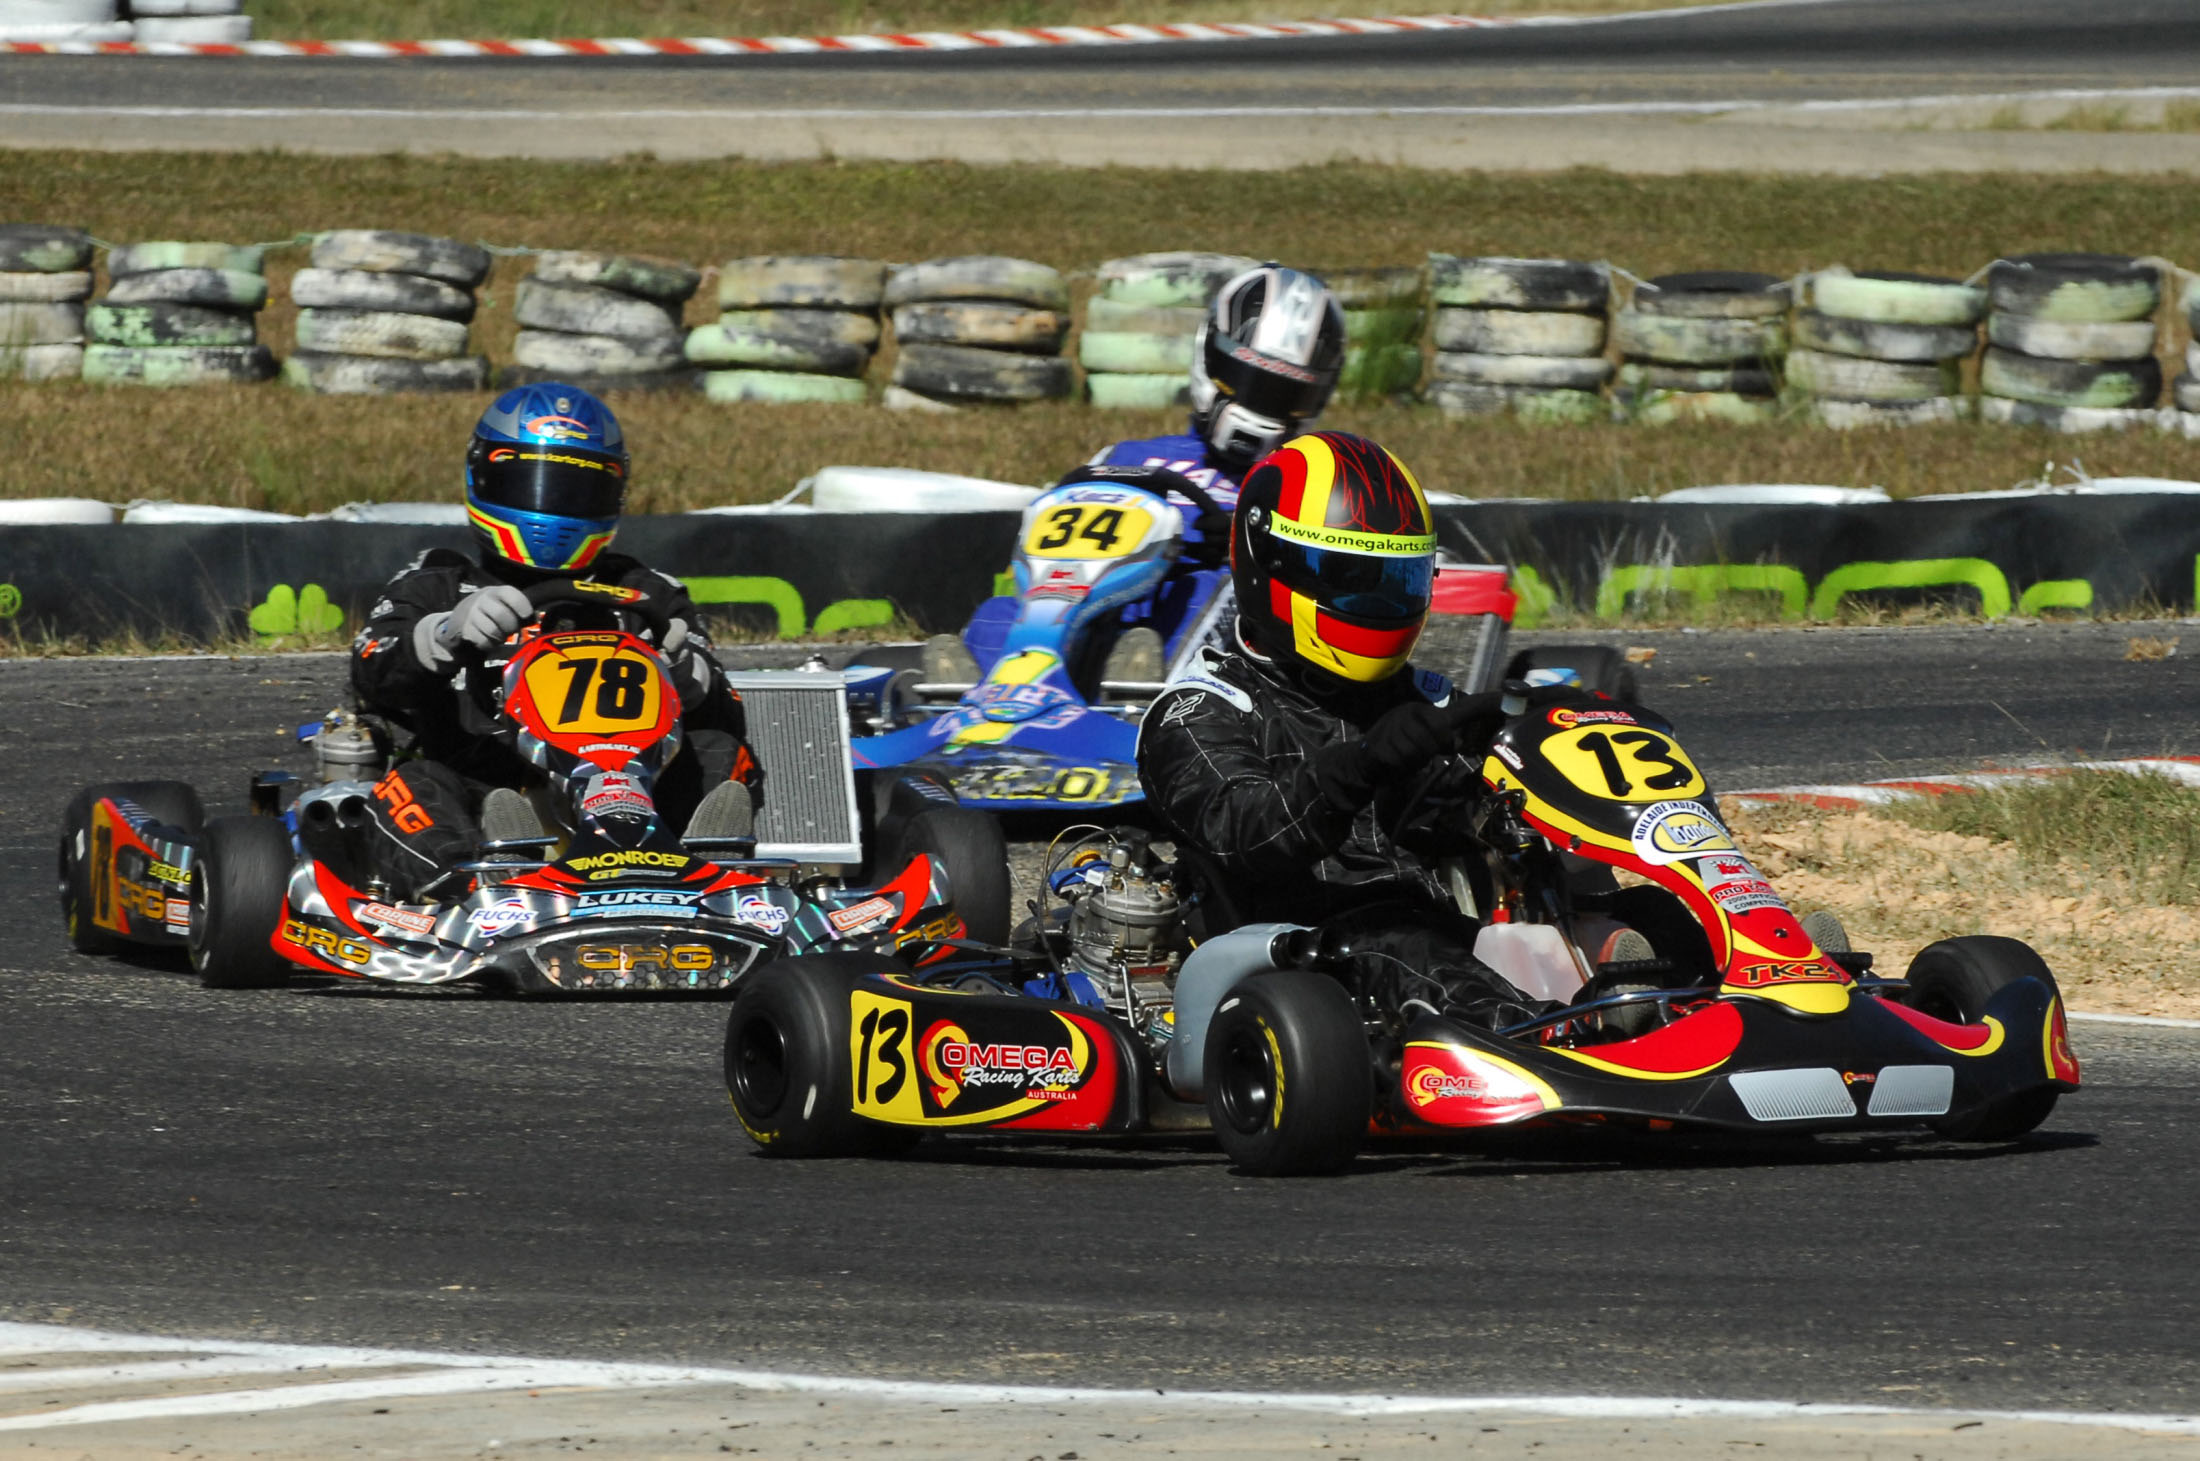 New qualifying format for Stars of Karting Series